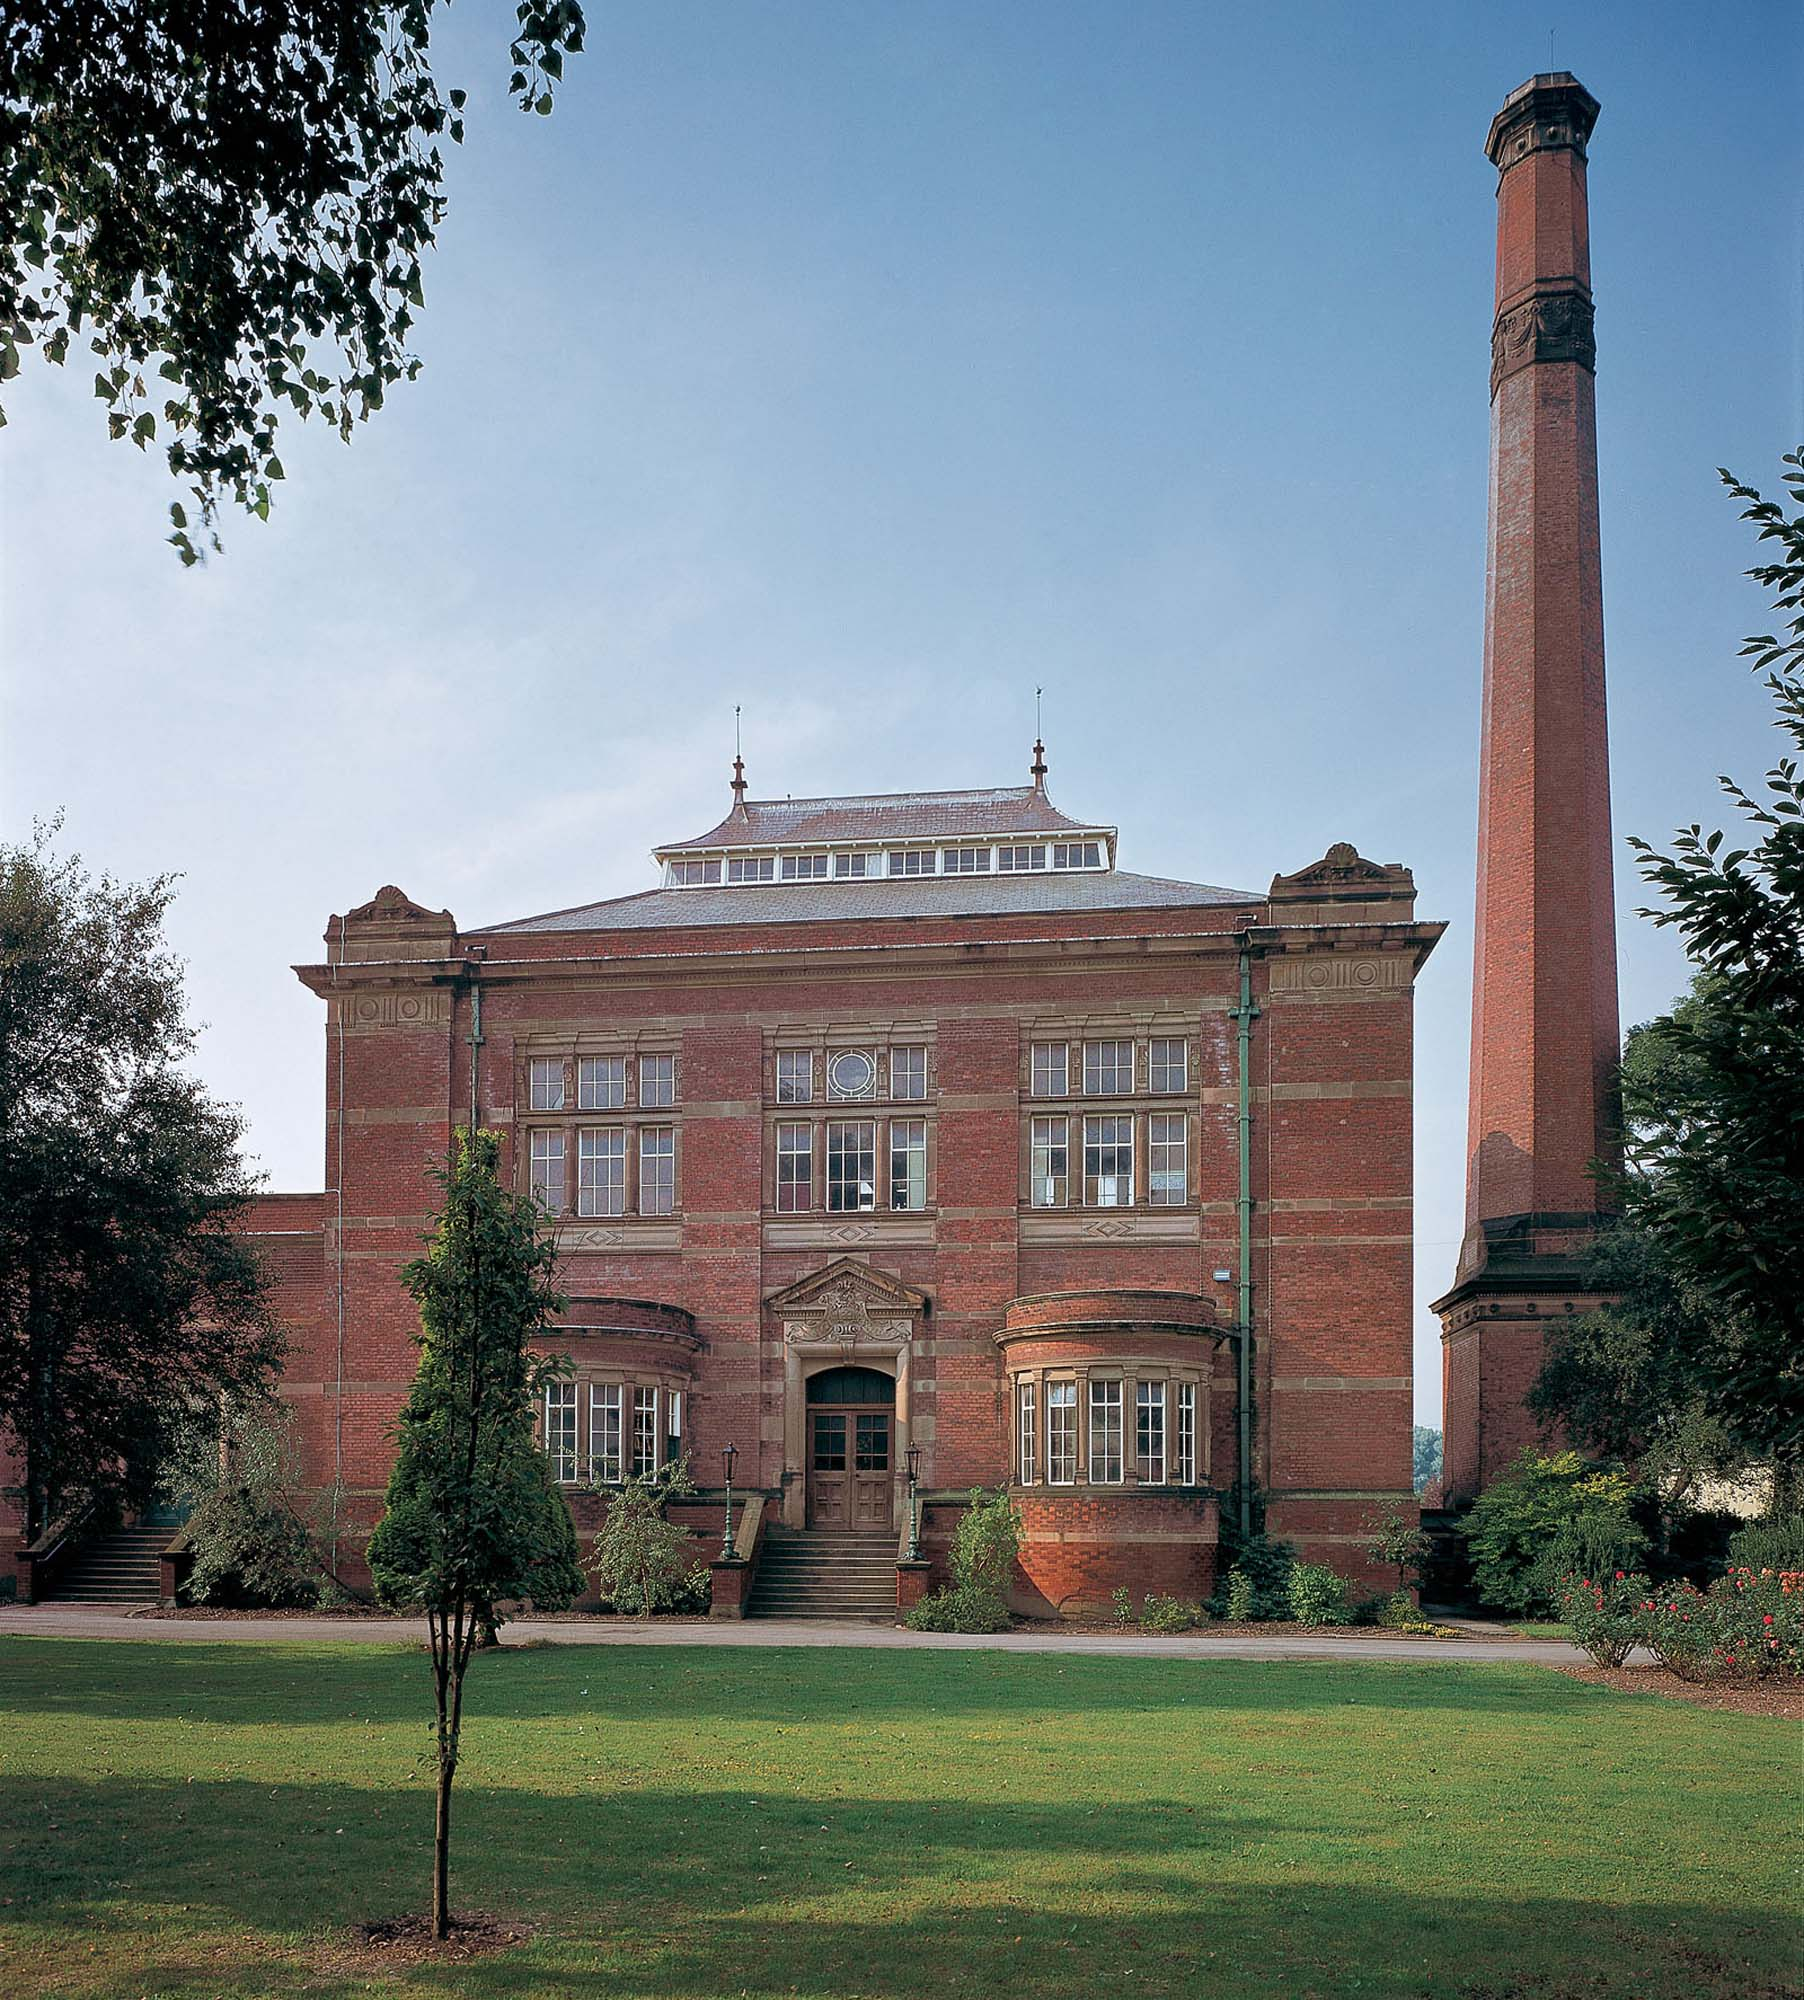 A view of the magnificent Victorian building and chimney -